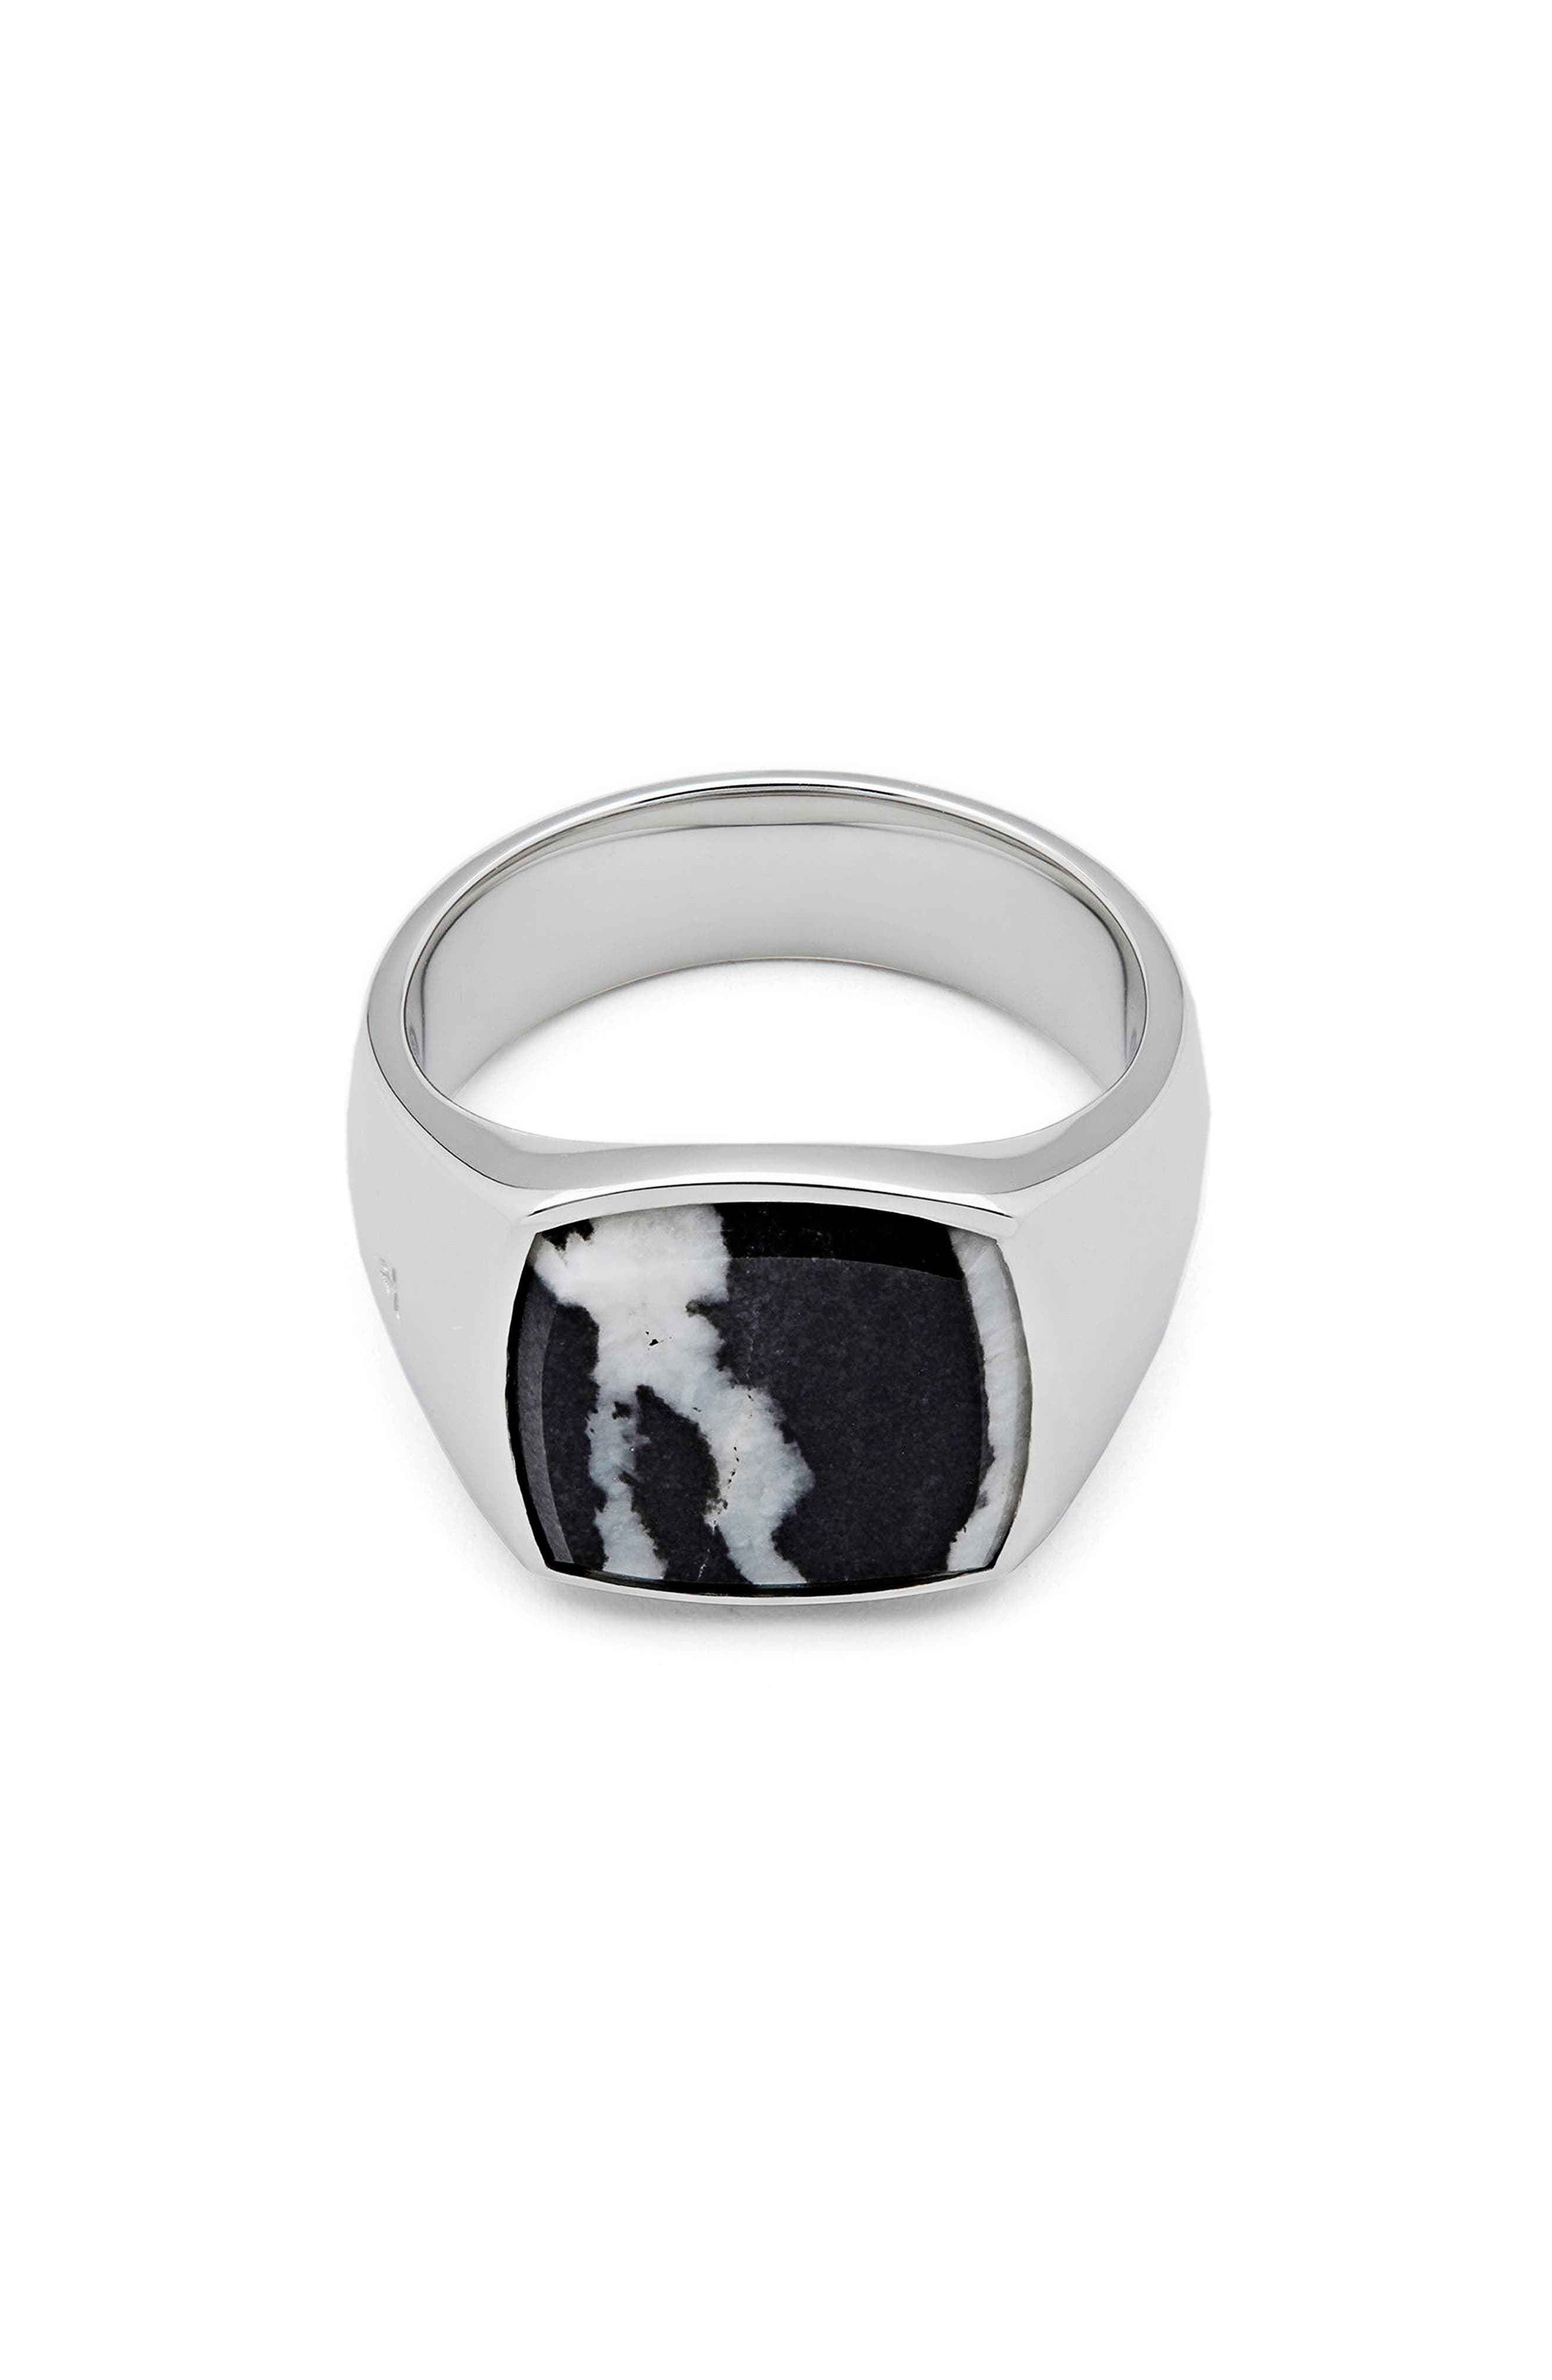 Women's Zebra Marble Cushion Signet Ring,                             Main thumbnail 1, color,                             925 Sterling Silver